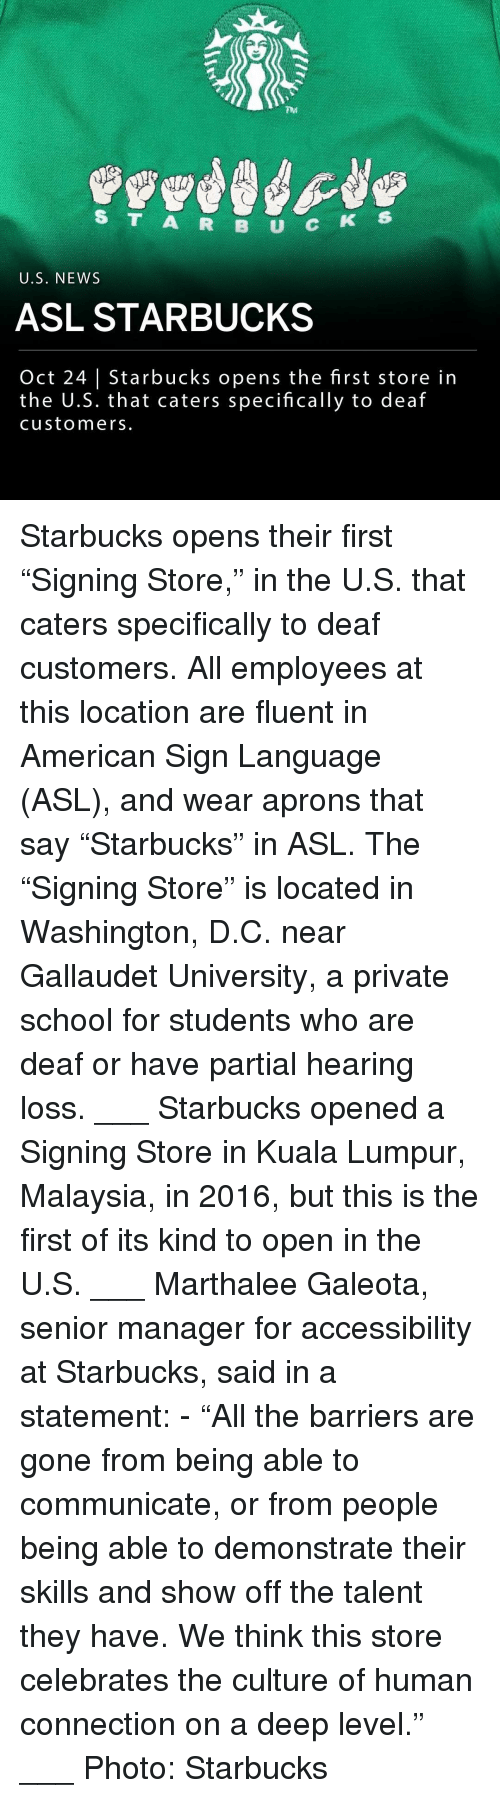 "Malaysia: 704  S T A R B U C  5  U.S. NEWS  ASL STARBUCKS  Oct 24 | Starbucks opens the first store in  the U.S. that caters specifically to deaf  customers. Starbucks opens their first ""Signing Store,"" in the U.S. that caters specifically to deaf customers. All employees at this location are fluent in American Sign Language (ASL), and wear aprons that say ""Starbucks"" in ASL. The ""Signing Store"" is located in Washington, D.C. near Gallaudet University, a private school for students who are deaf or have partial hearing loss. ___ Starbucks opened a Signing Store in Kuala Lumpur, Malaysia, in 2016, but this is the first of its kind to open in the U.S. ___ Marthalee Galeota, senior manager for accessibility at Starbucks, said in a statement: - ""All the barriers are gone from being able to communicate, or from people being able to demonstrate their skills and show off the talent they have. We think this store celebrates the culture of human connection on a deep level."" ___ Photo: Starbucks"